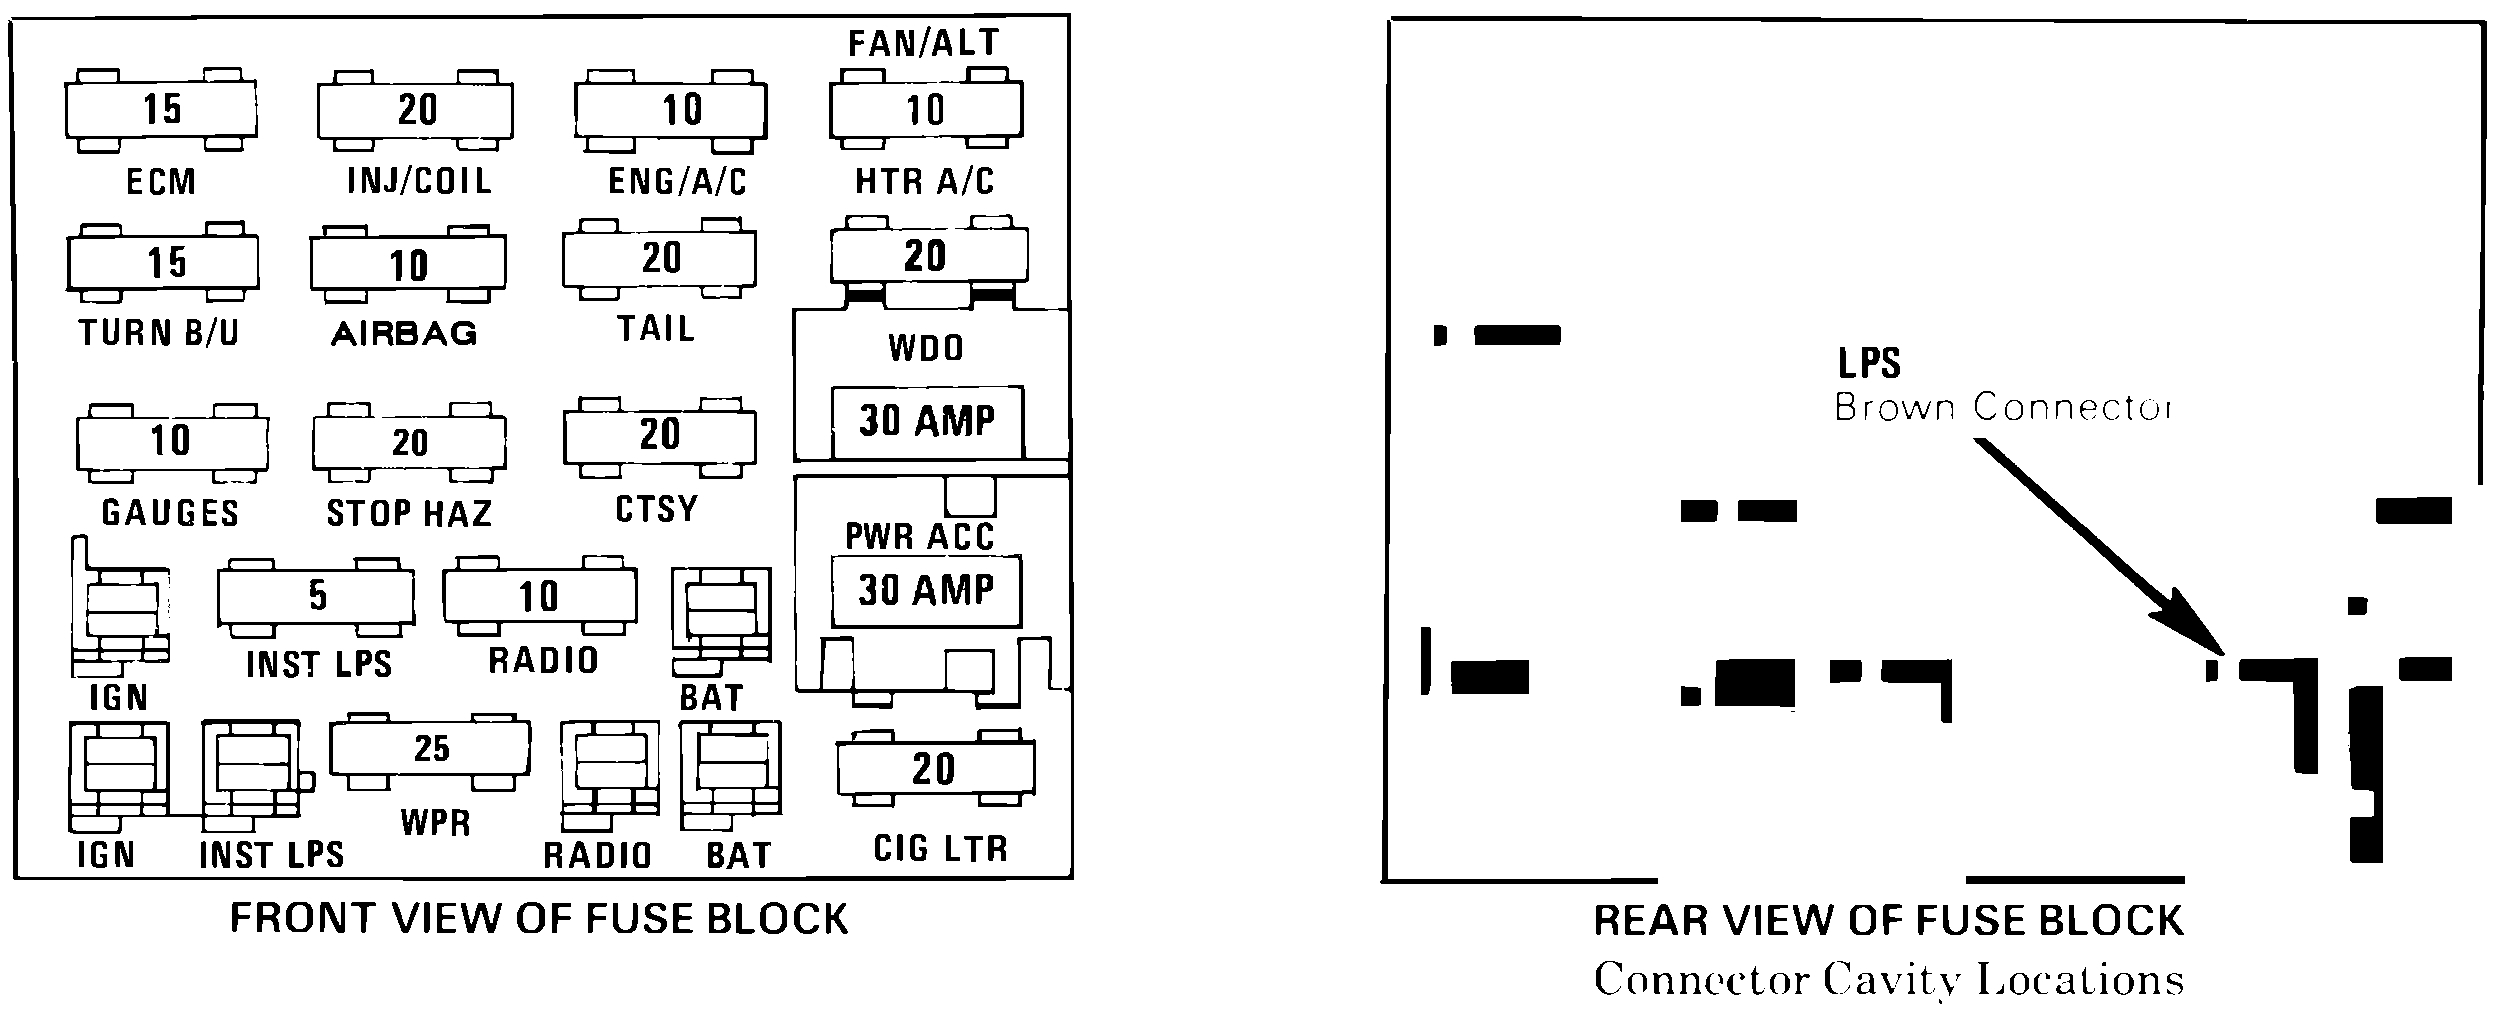 Ignition Fuse And Relay Where Is The Ignition Fuse And